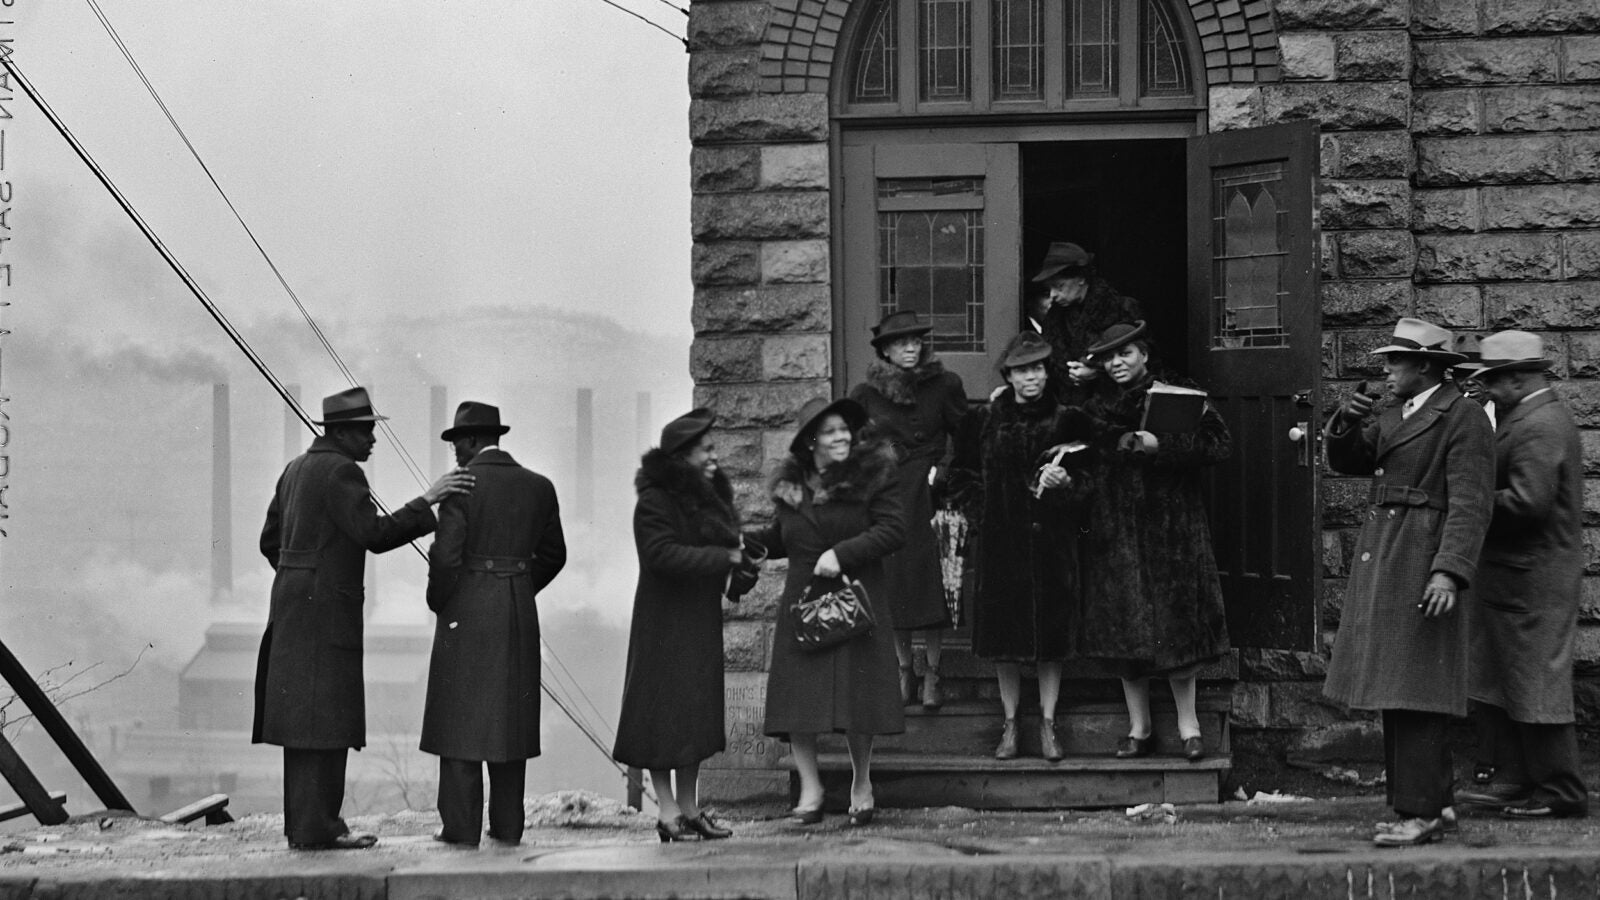 A congregation exiting a church in Pittsburgh.